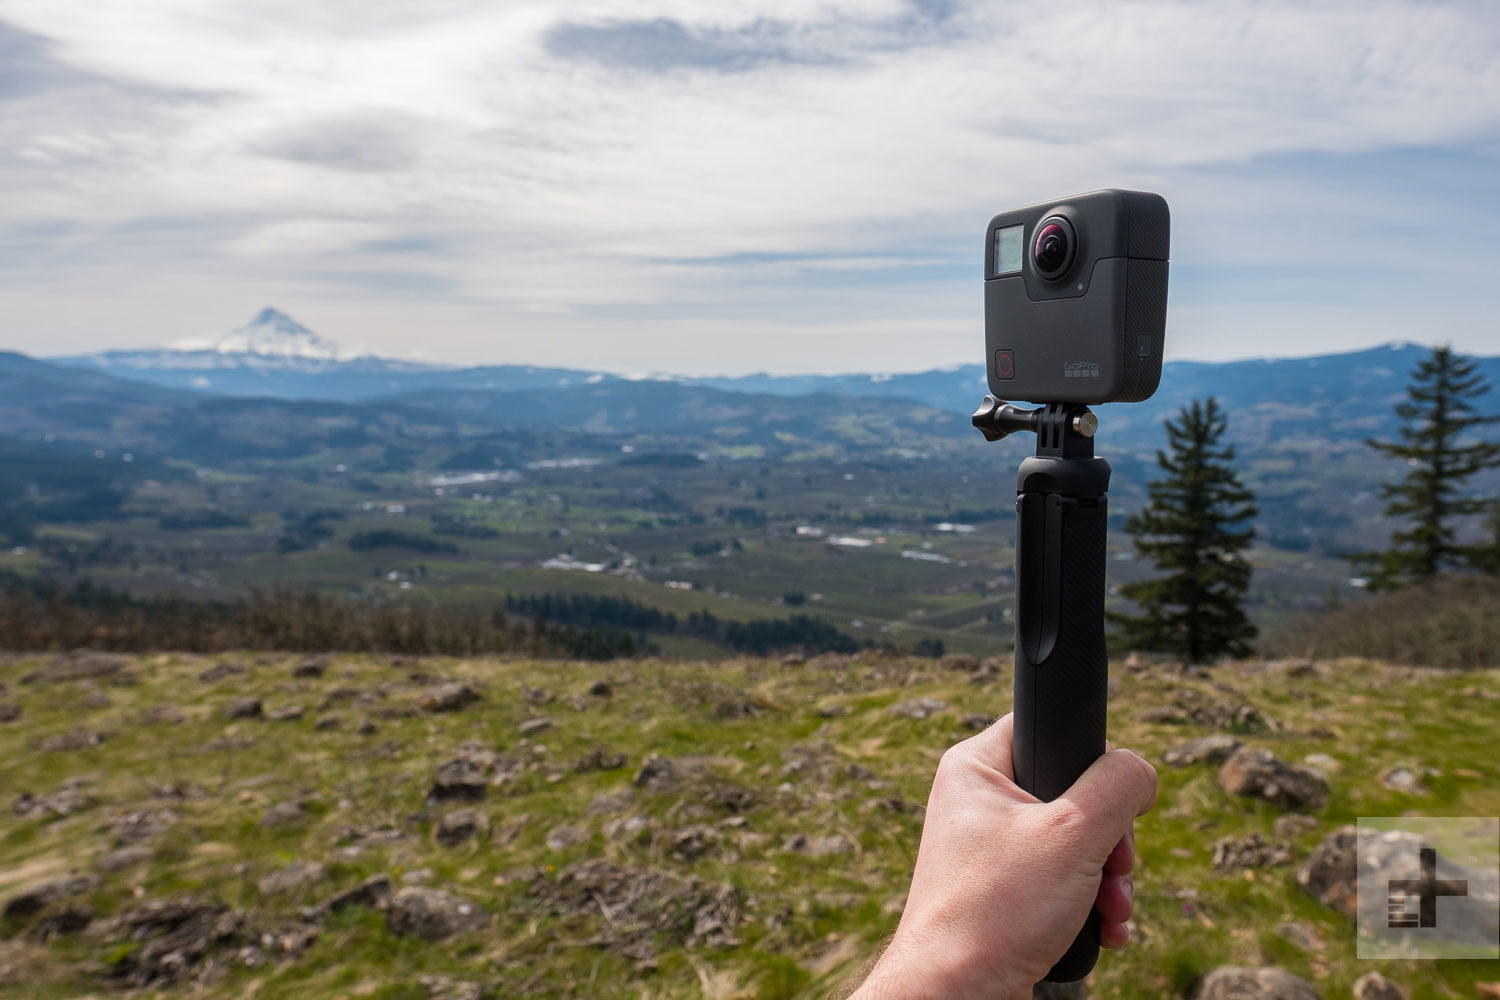 Capture 360 Degrees for Under $300 with Half-Off GoPro